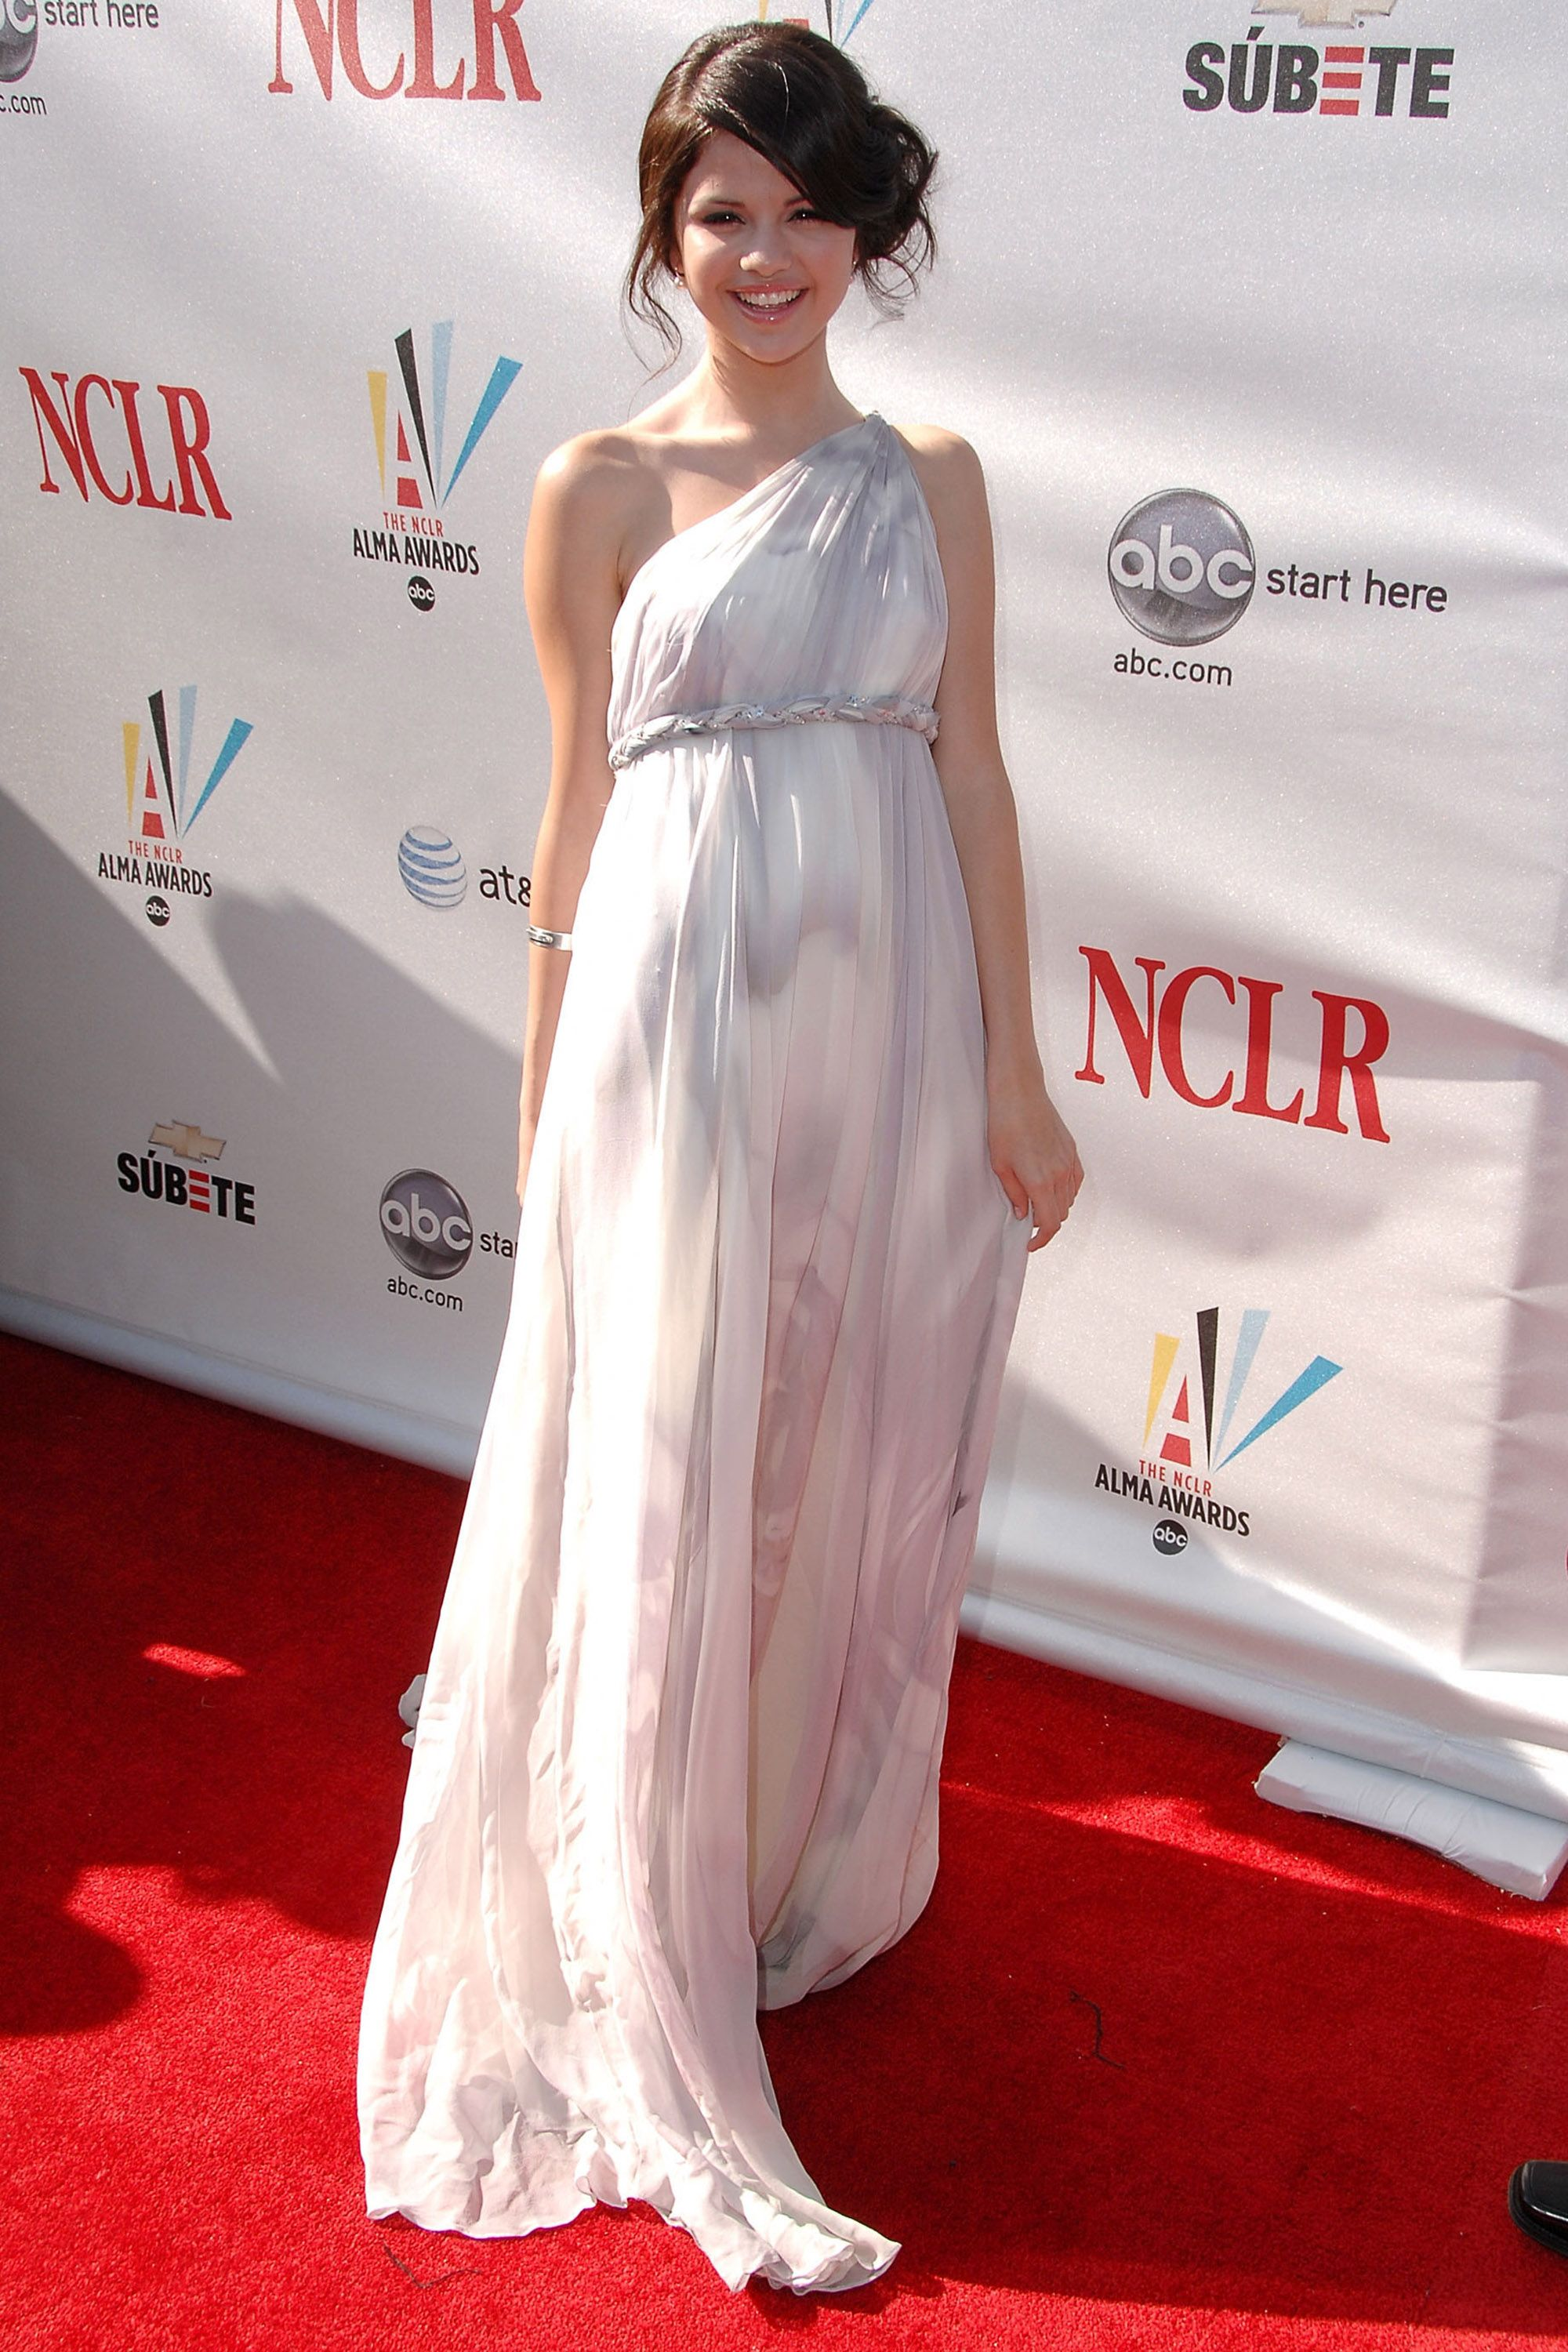 <p>Alma Awards, 2008</p>